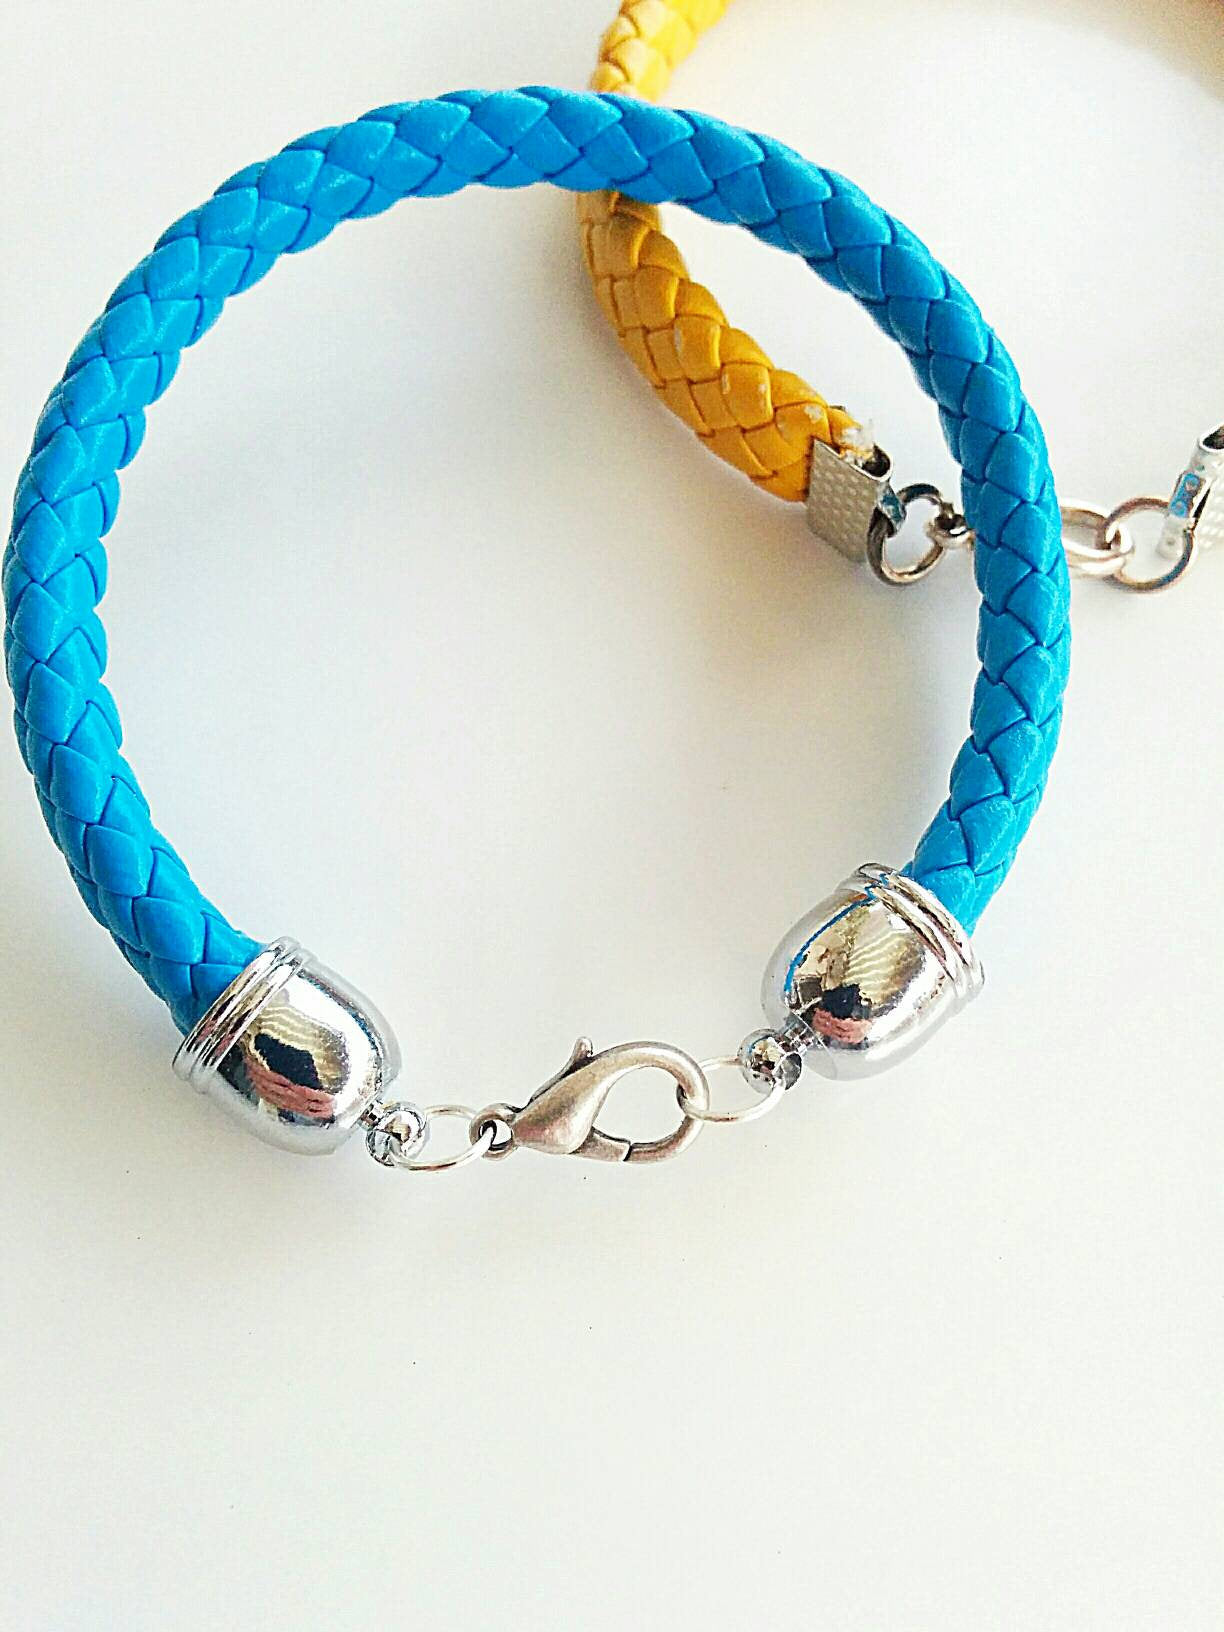 Boho blue and yellow leather bracelets, blue leather bracelet, thick bracelet, yellow bracelet, boho blue bracelet, hippie bracelet